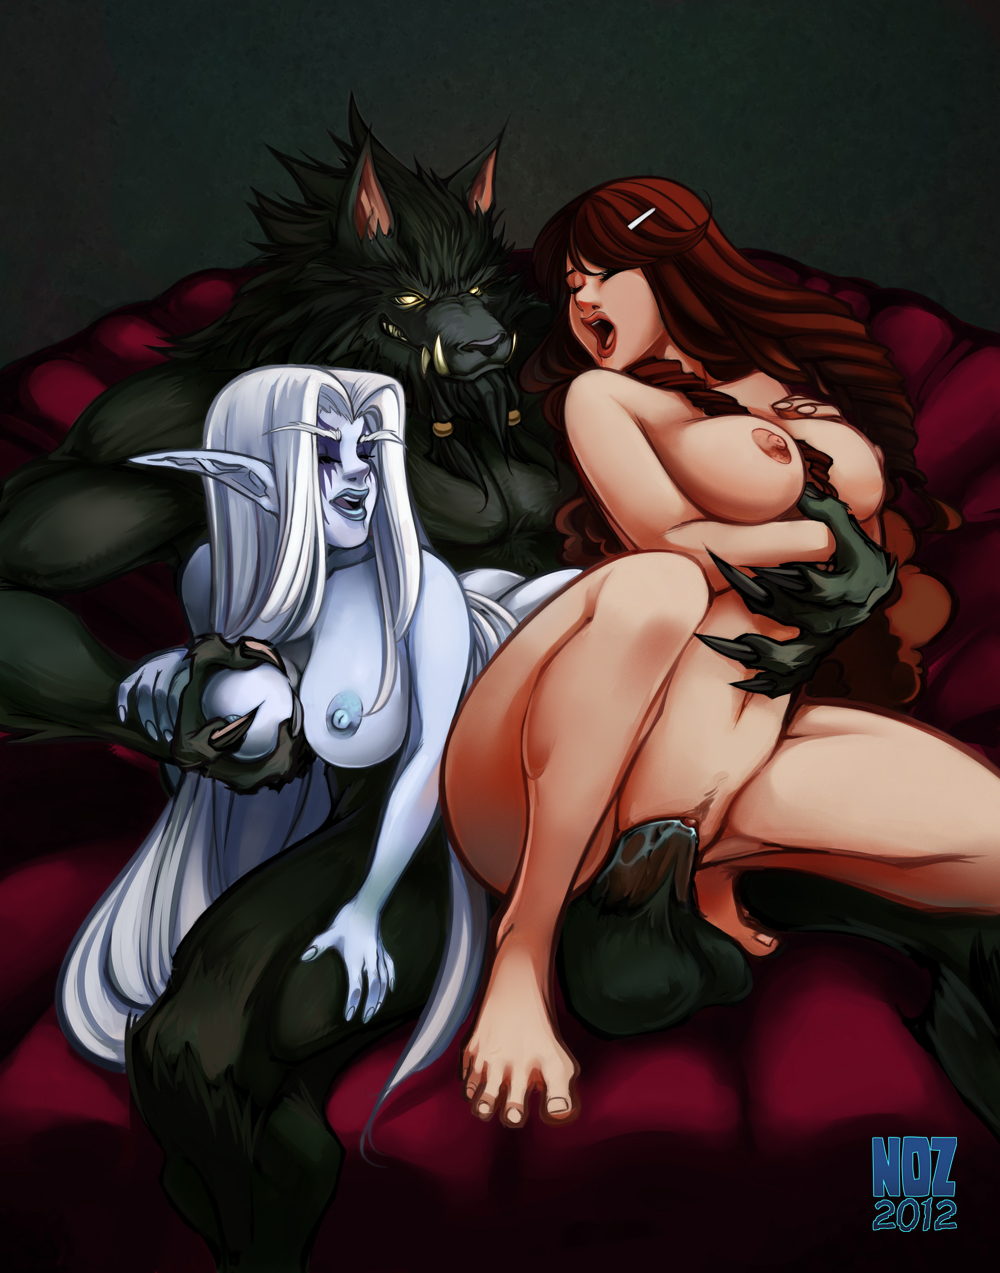 World of warcraft nightelf hentai porn exploited film